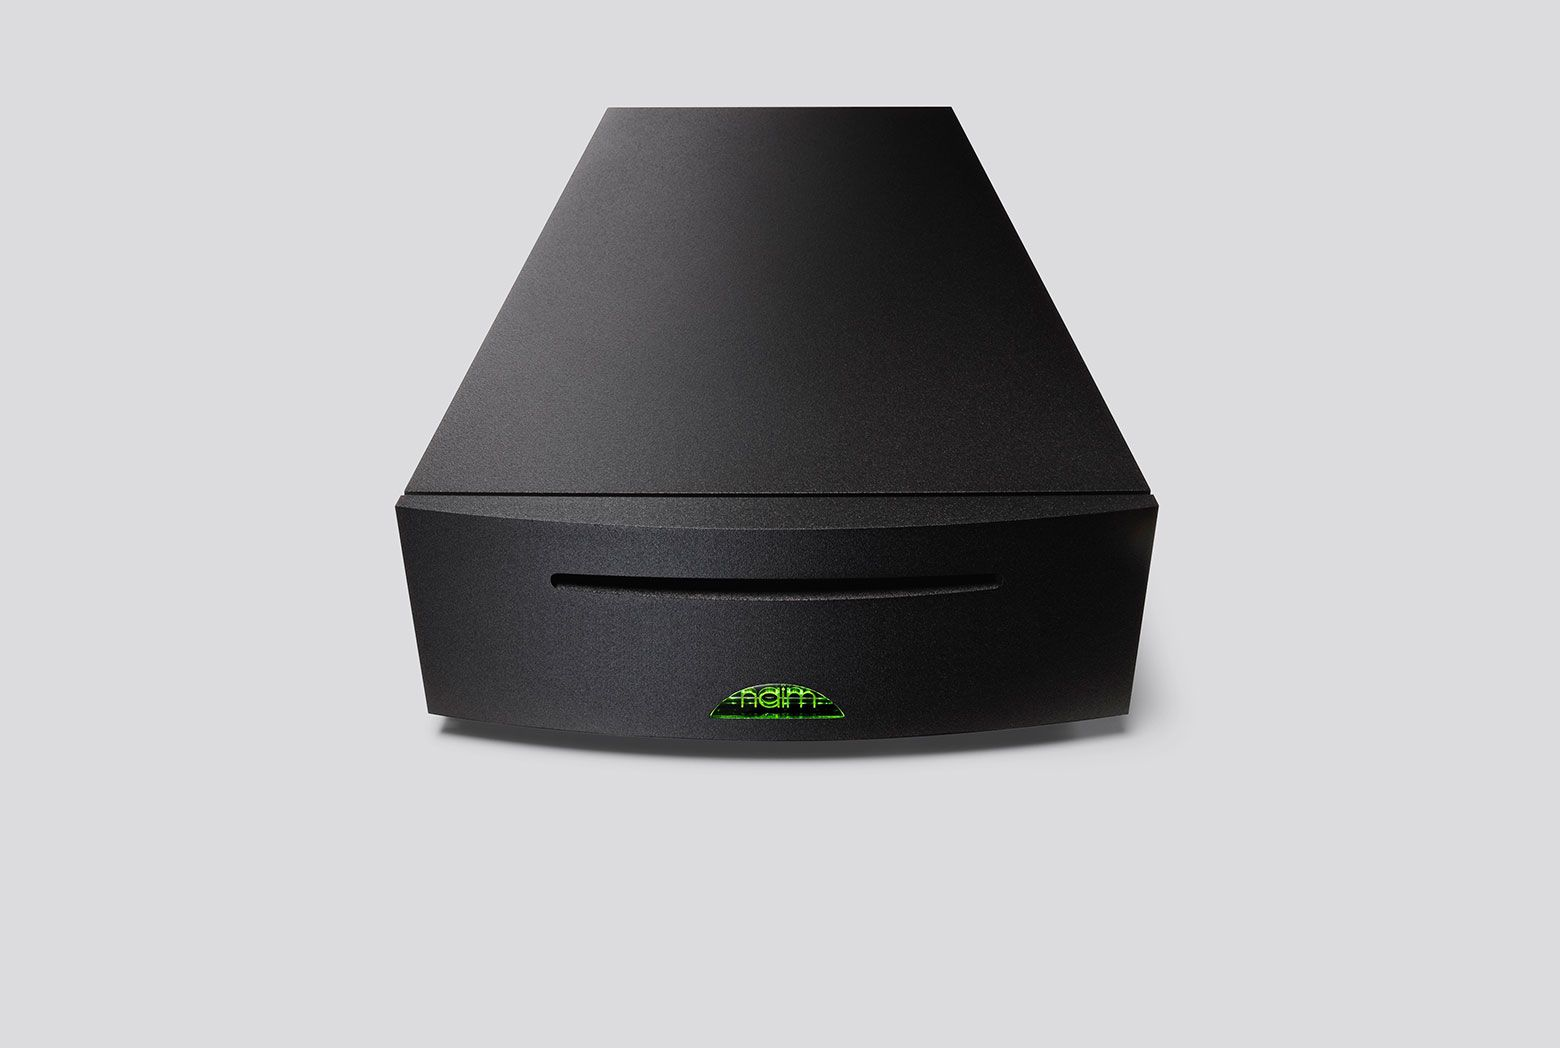 UnitiServe hard disk player